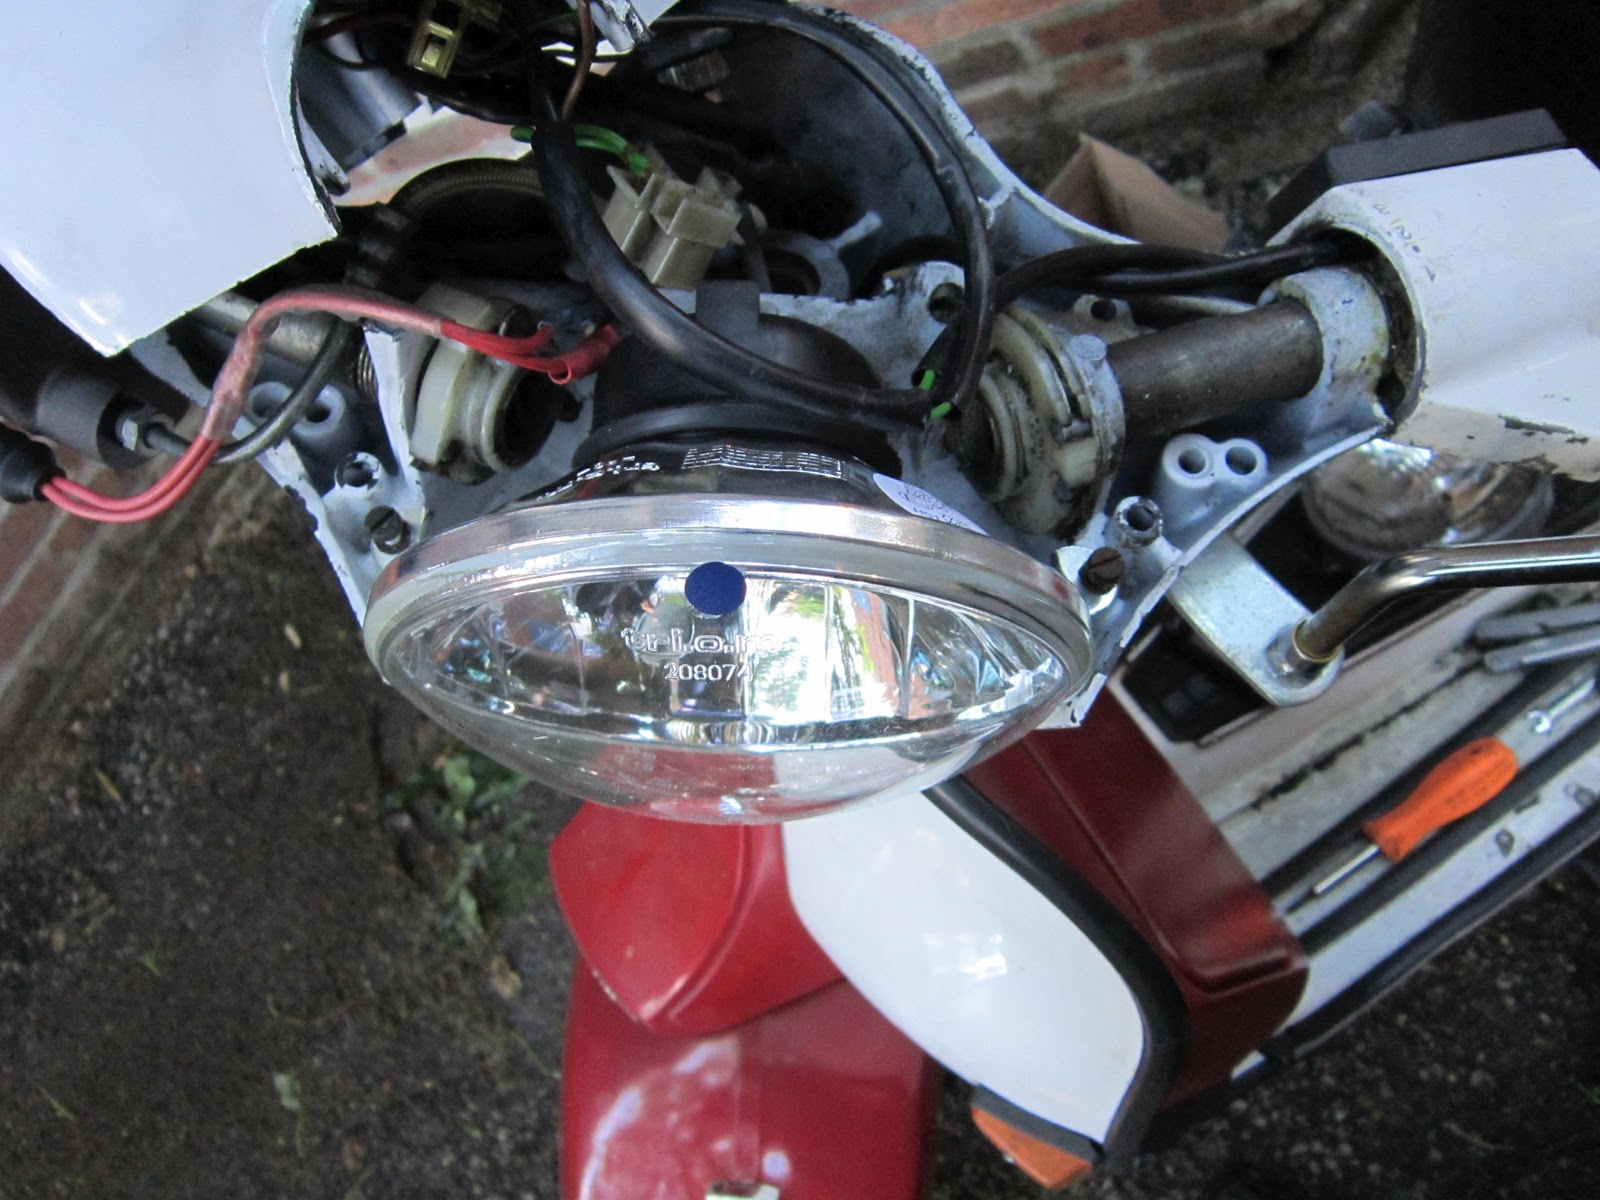 Vespafrog Vespa Px125e Wiring Diagram The Screw For Locking Vertical Aim Of Headlight Uses A Different Hole On Px While It Used To Go Through Marked With Red